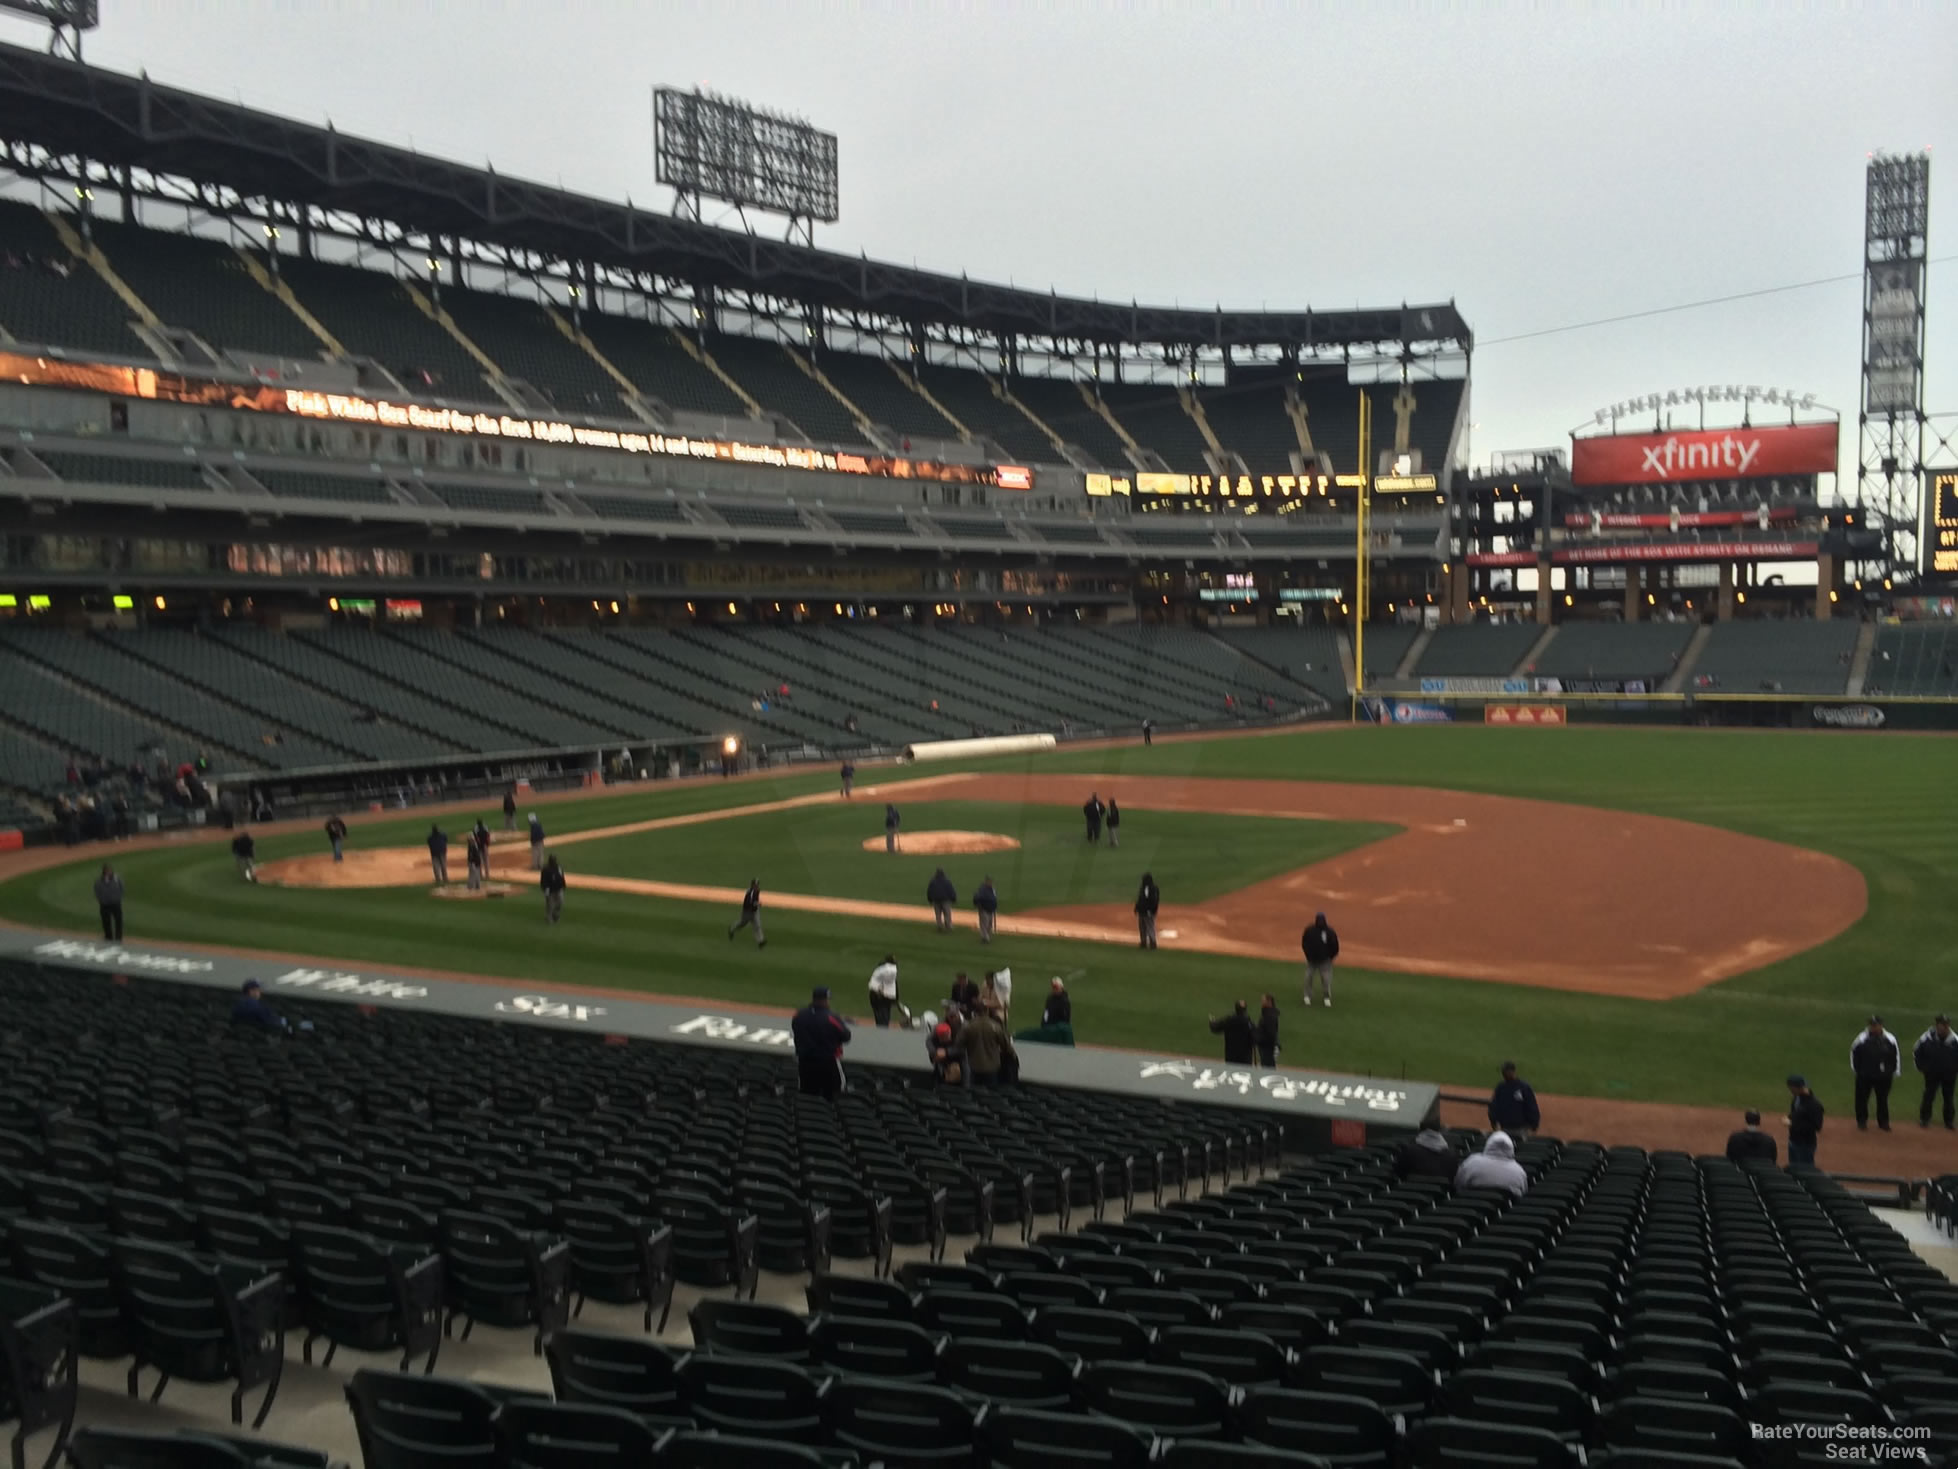 Guaranteed Rate Field Section 121 - RateYourSeats.com